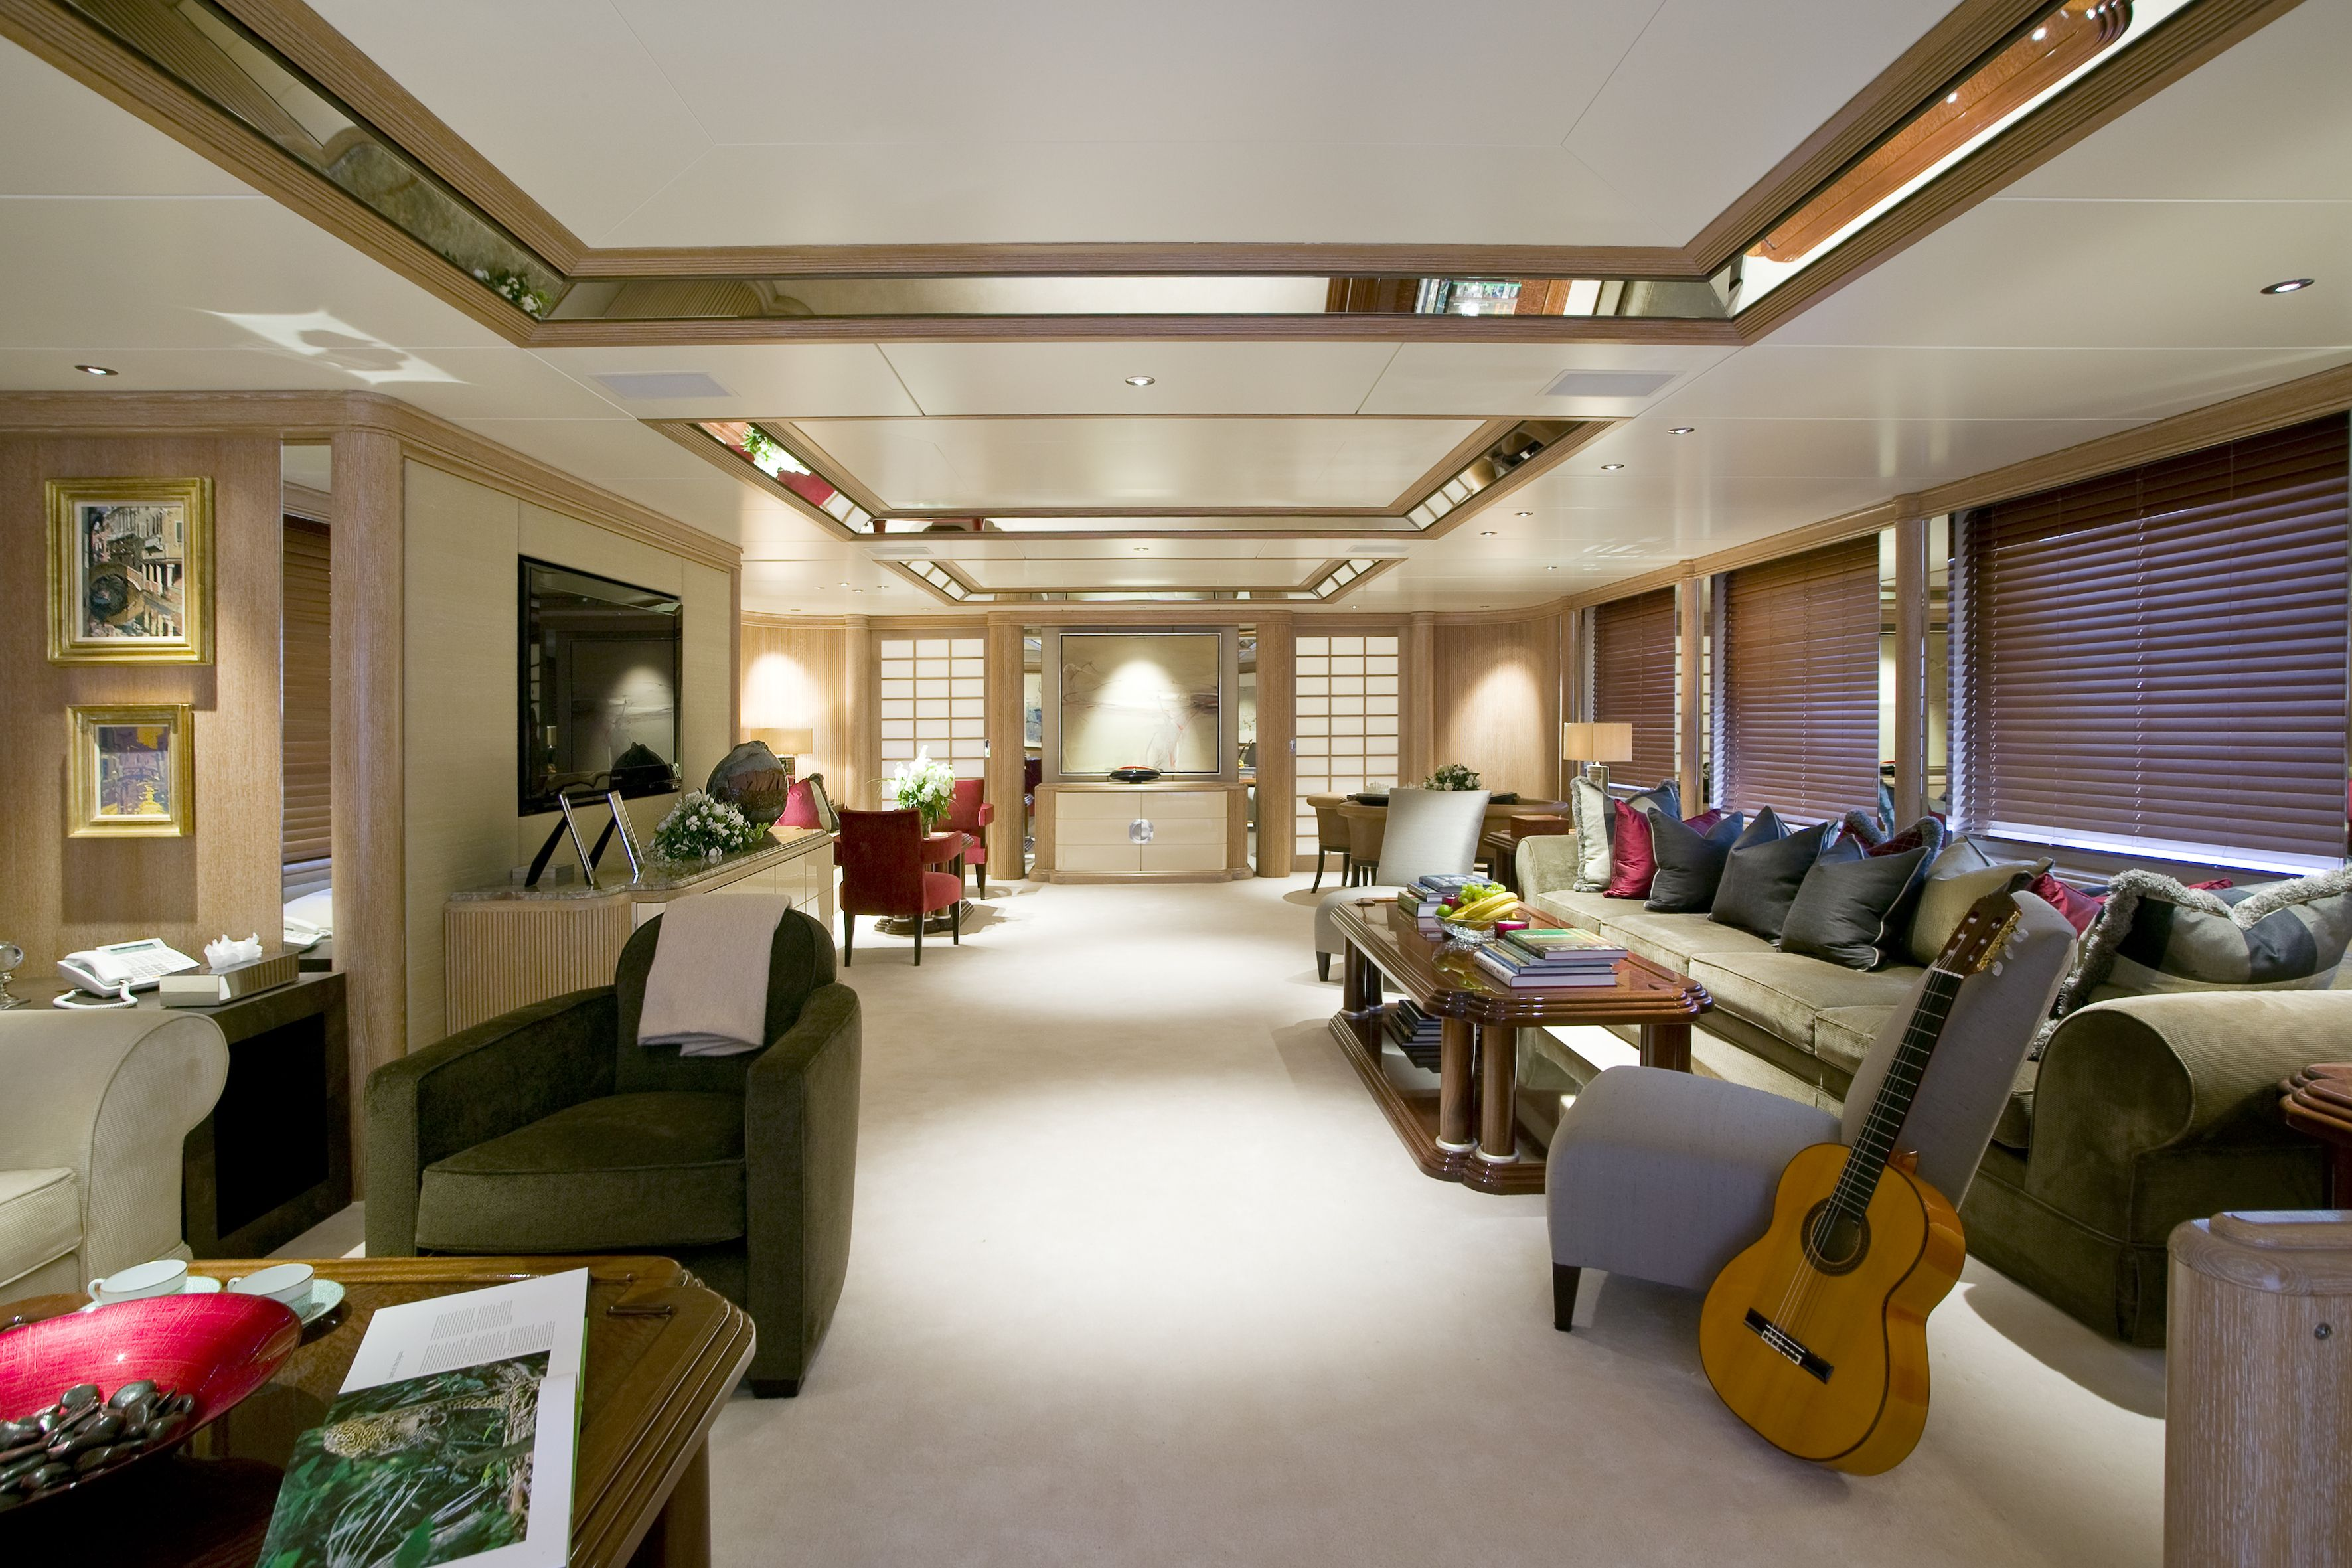 Eric Claptons Yacht Myva Bene, Interior Refitted By Dutch Joinery